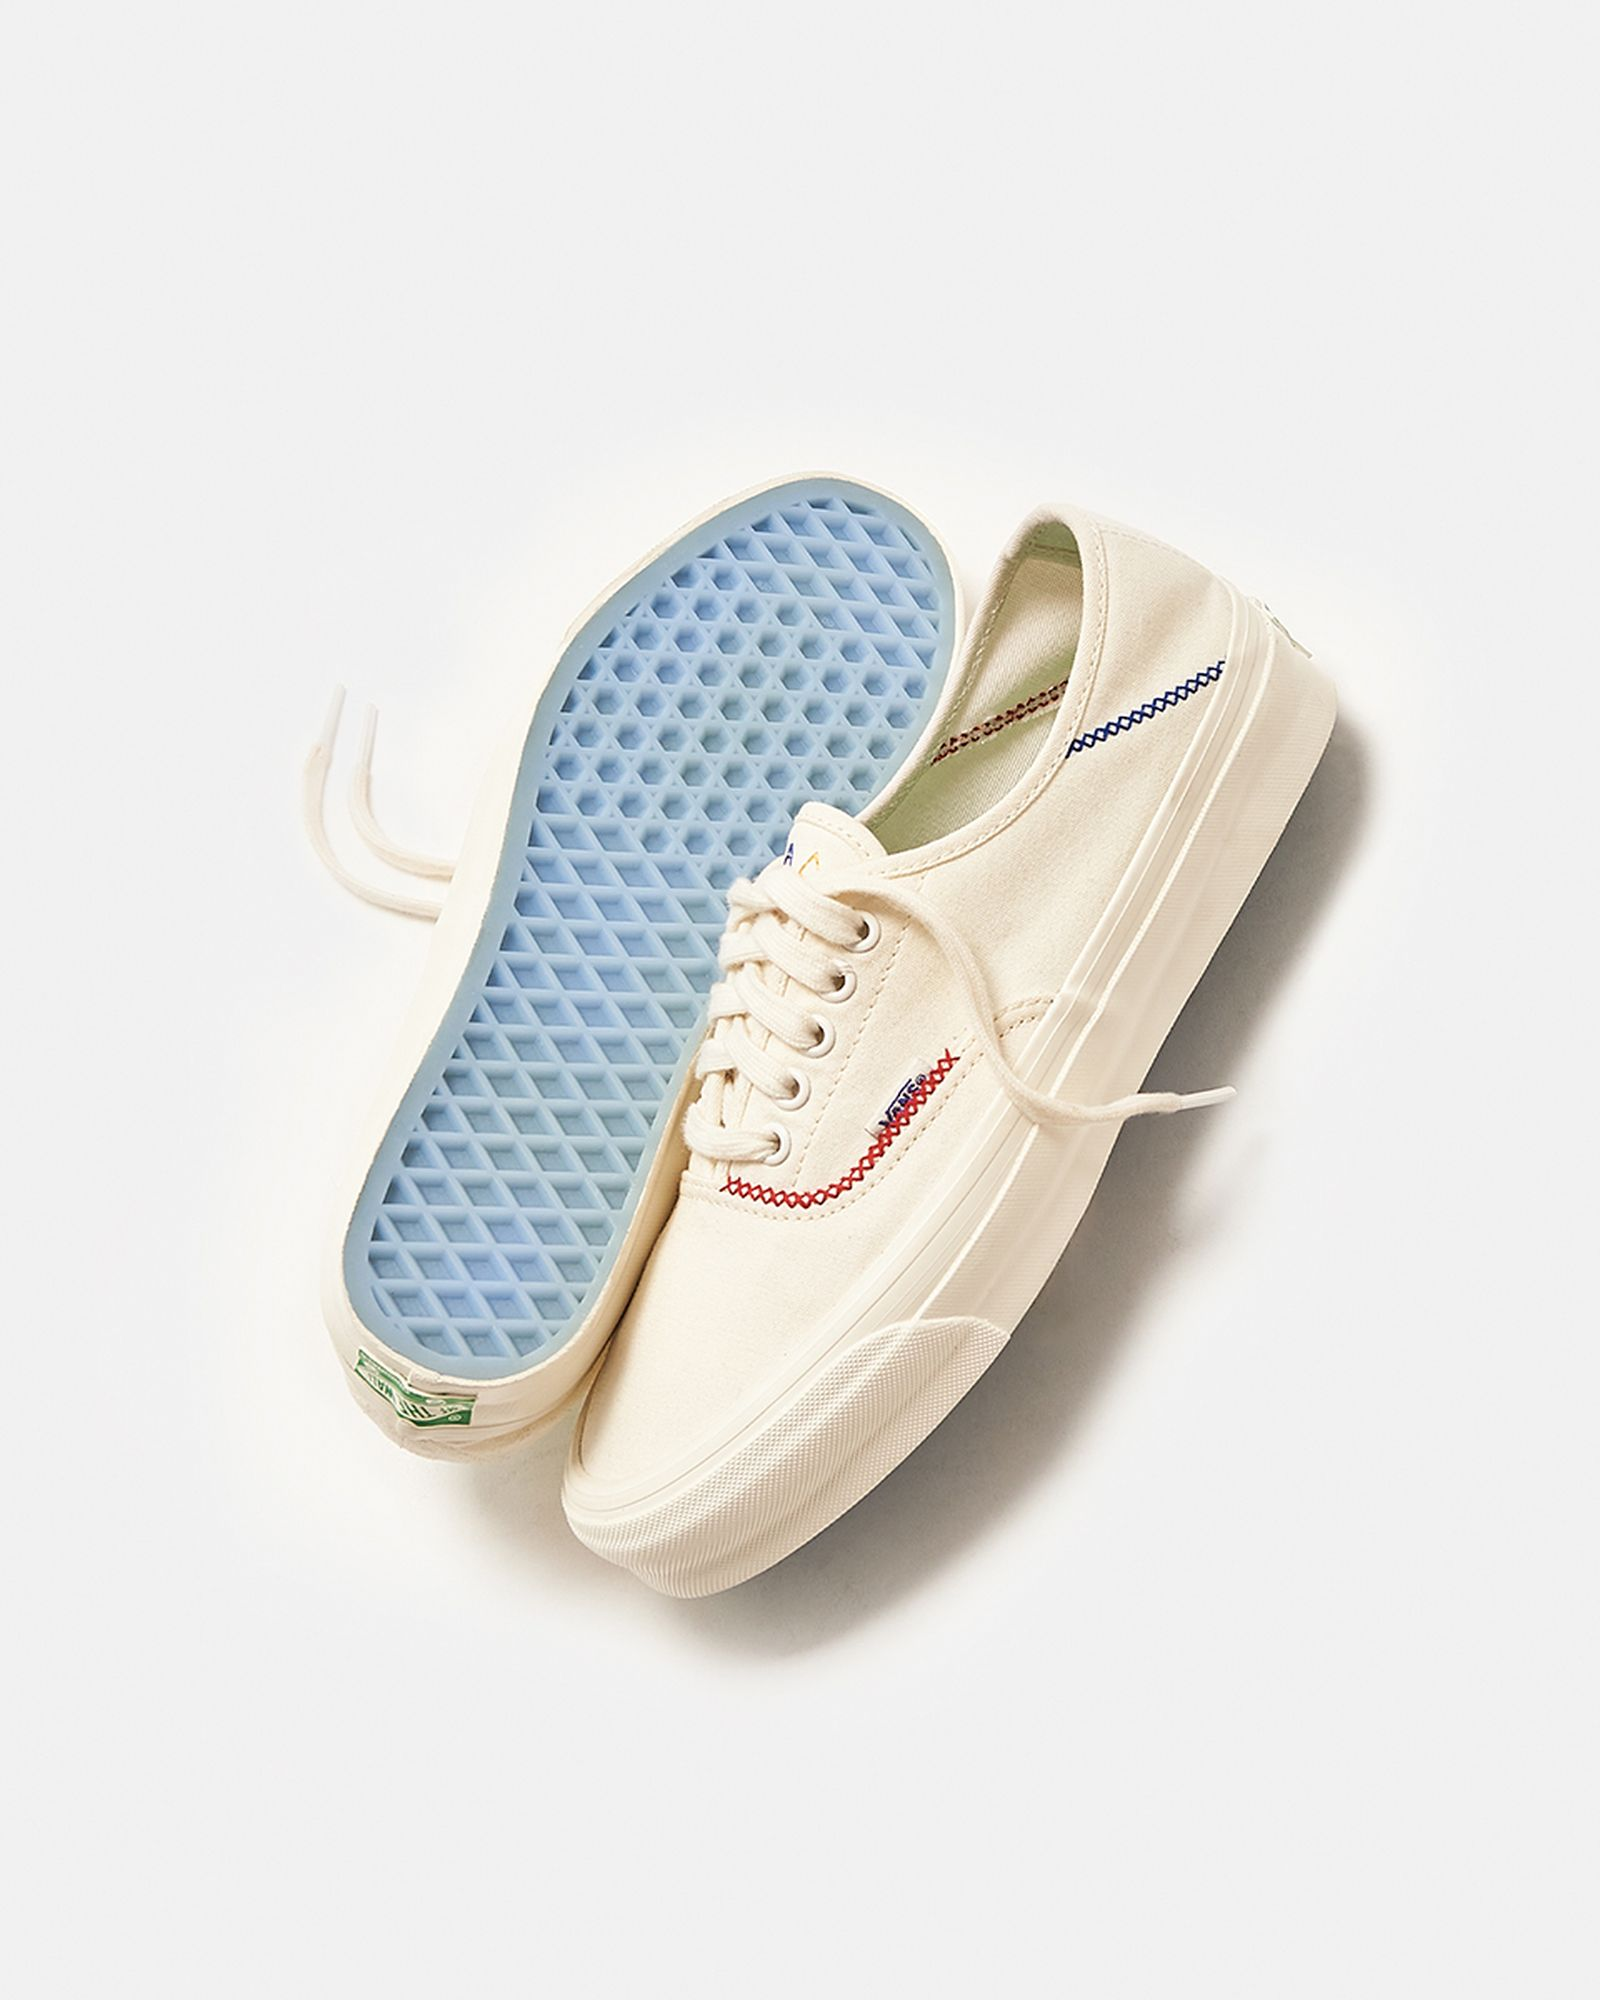 madhappy-vault-by-vans-og-style-43-lx-release-date-price-05